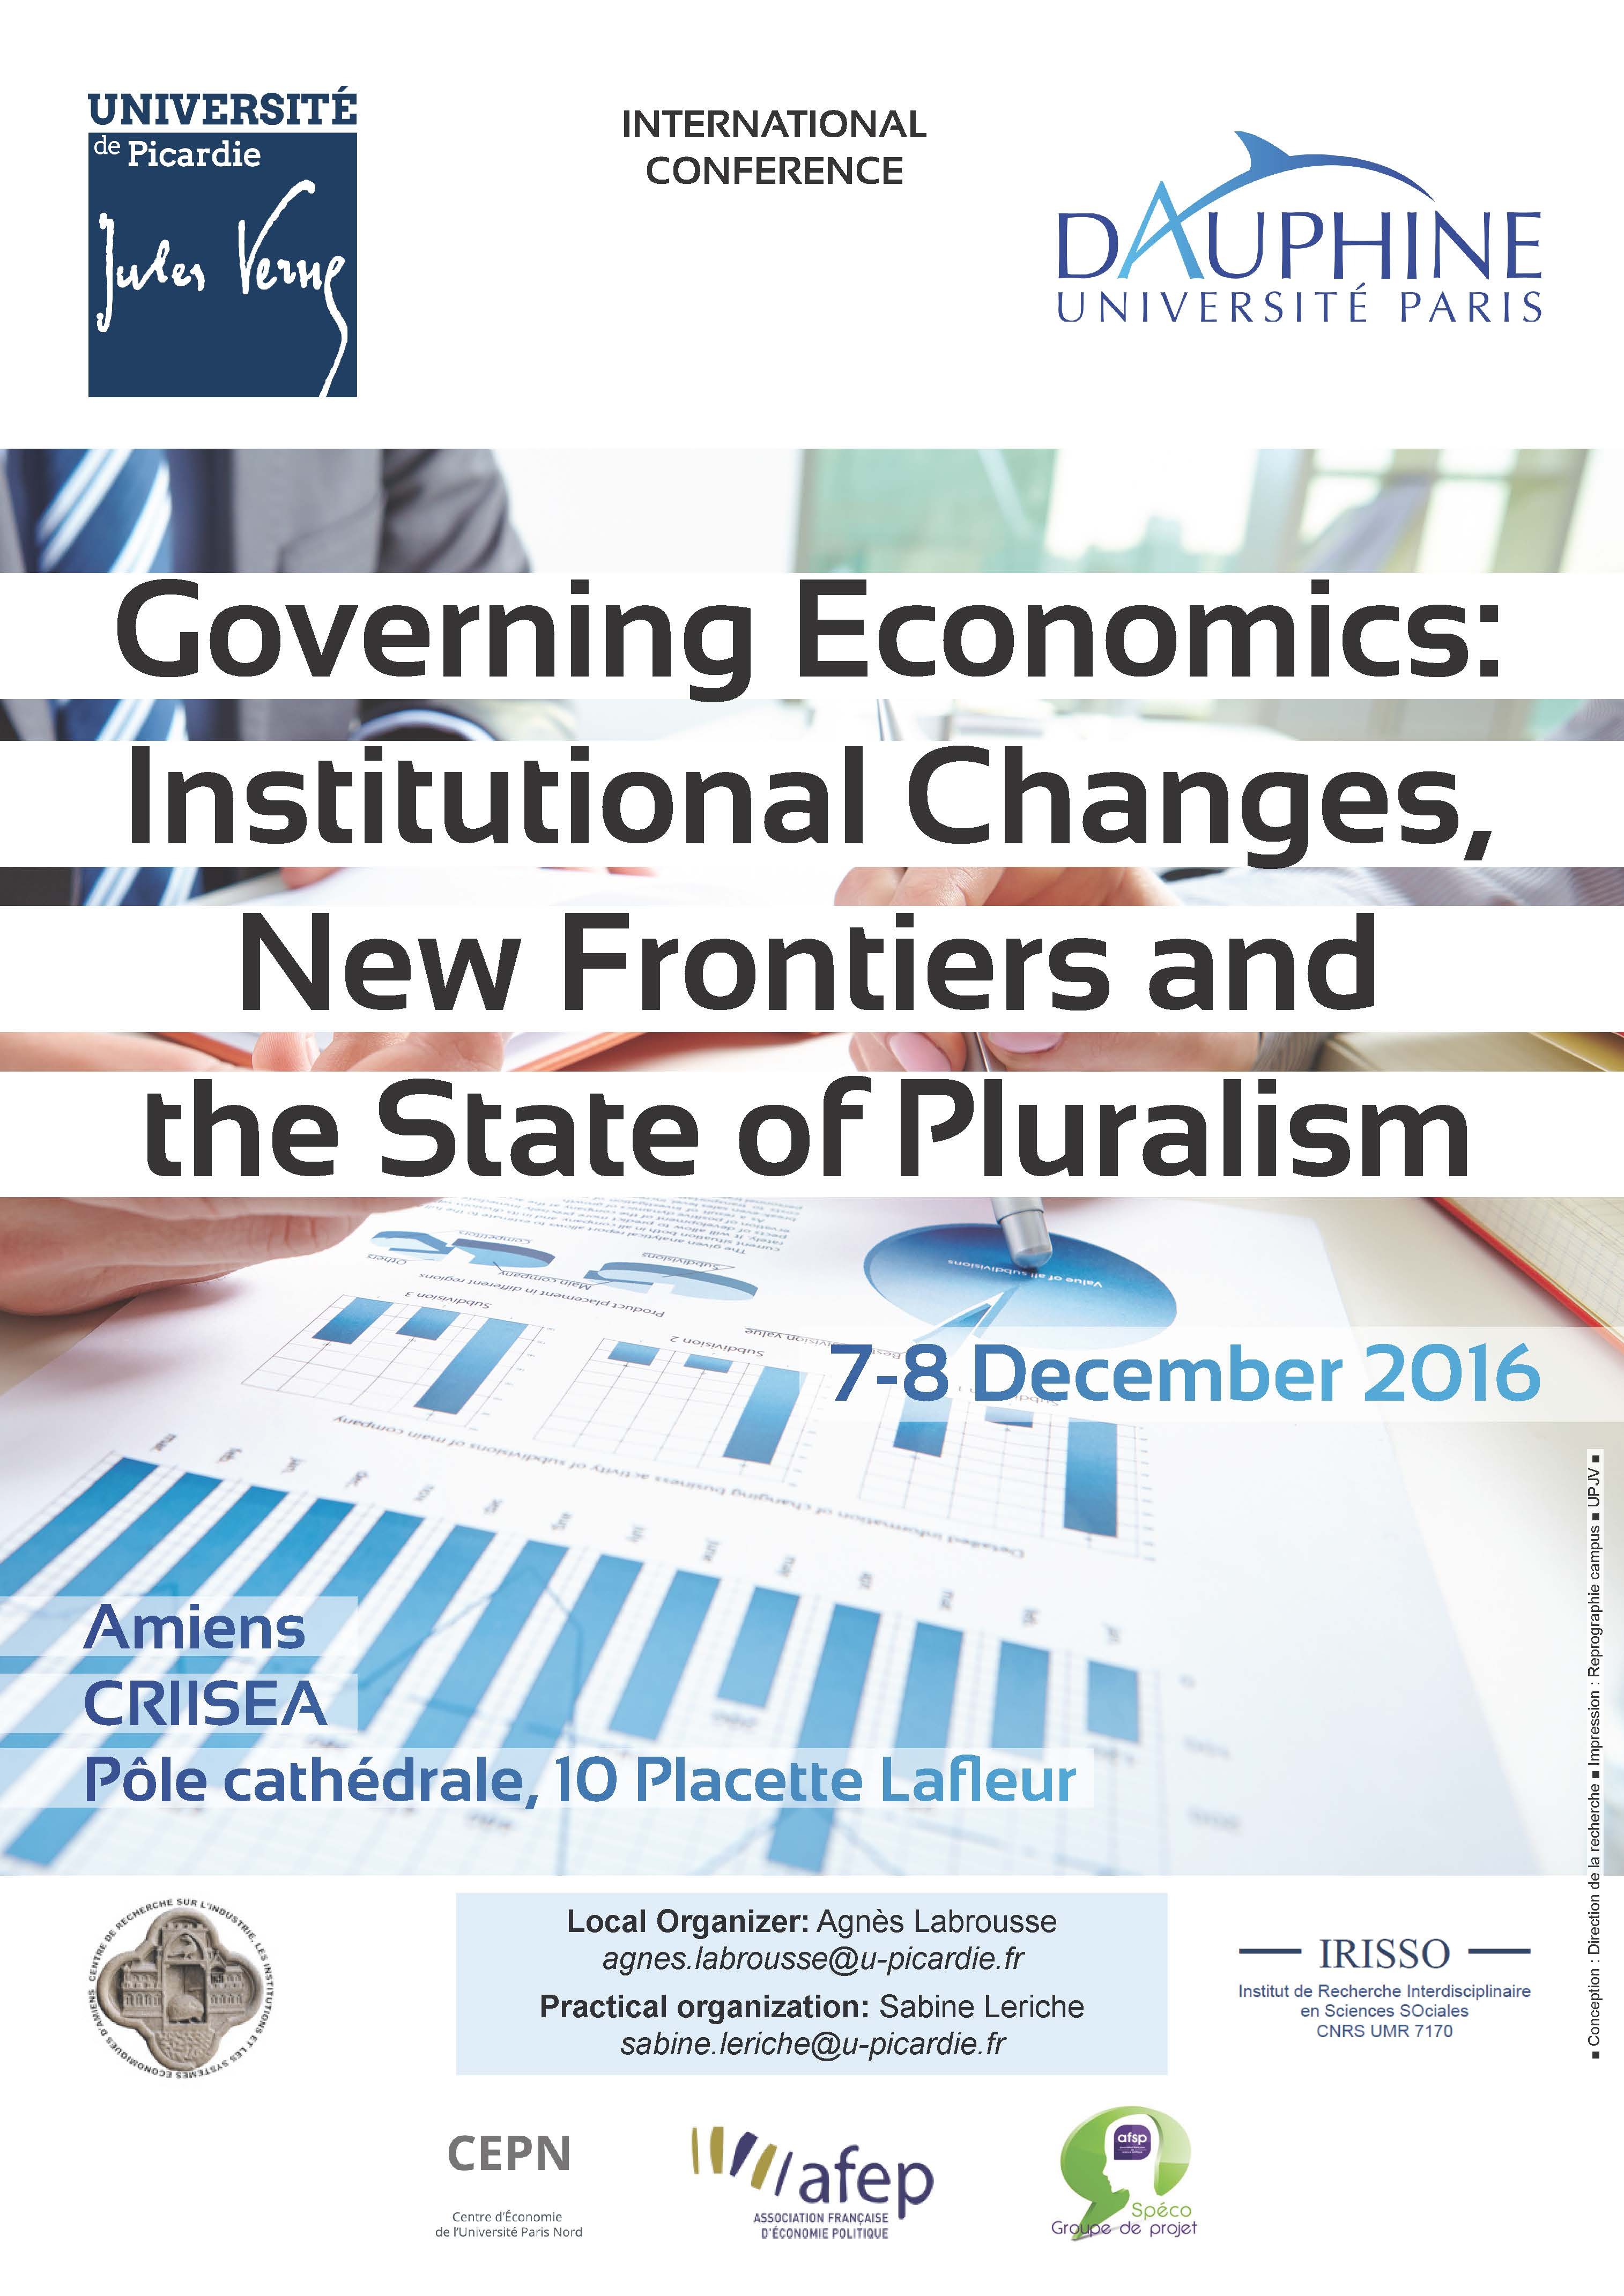 Governing Economics: Institutional Changes, New Frontiers and the State of Pluralism